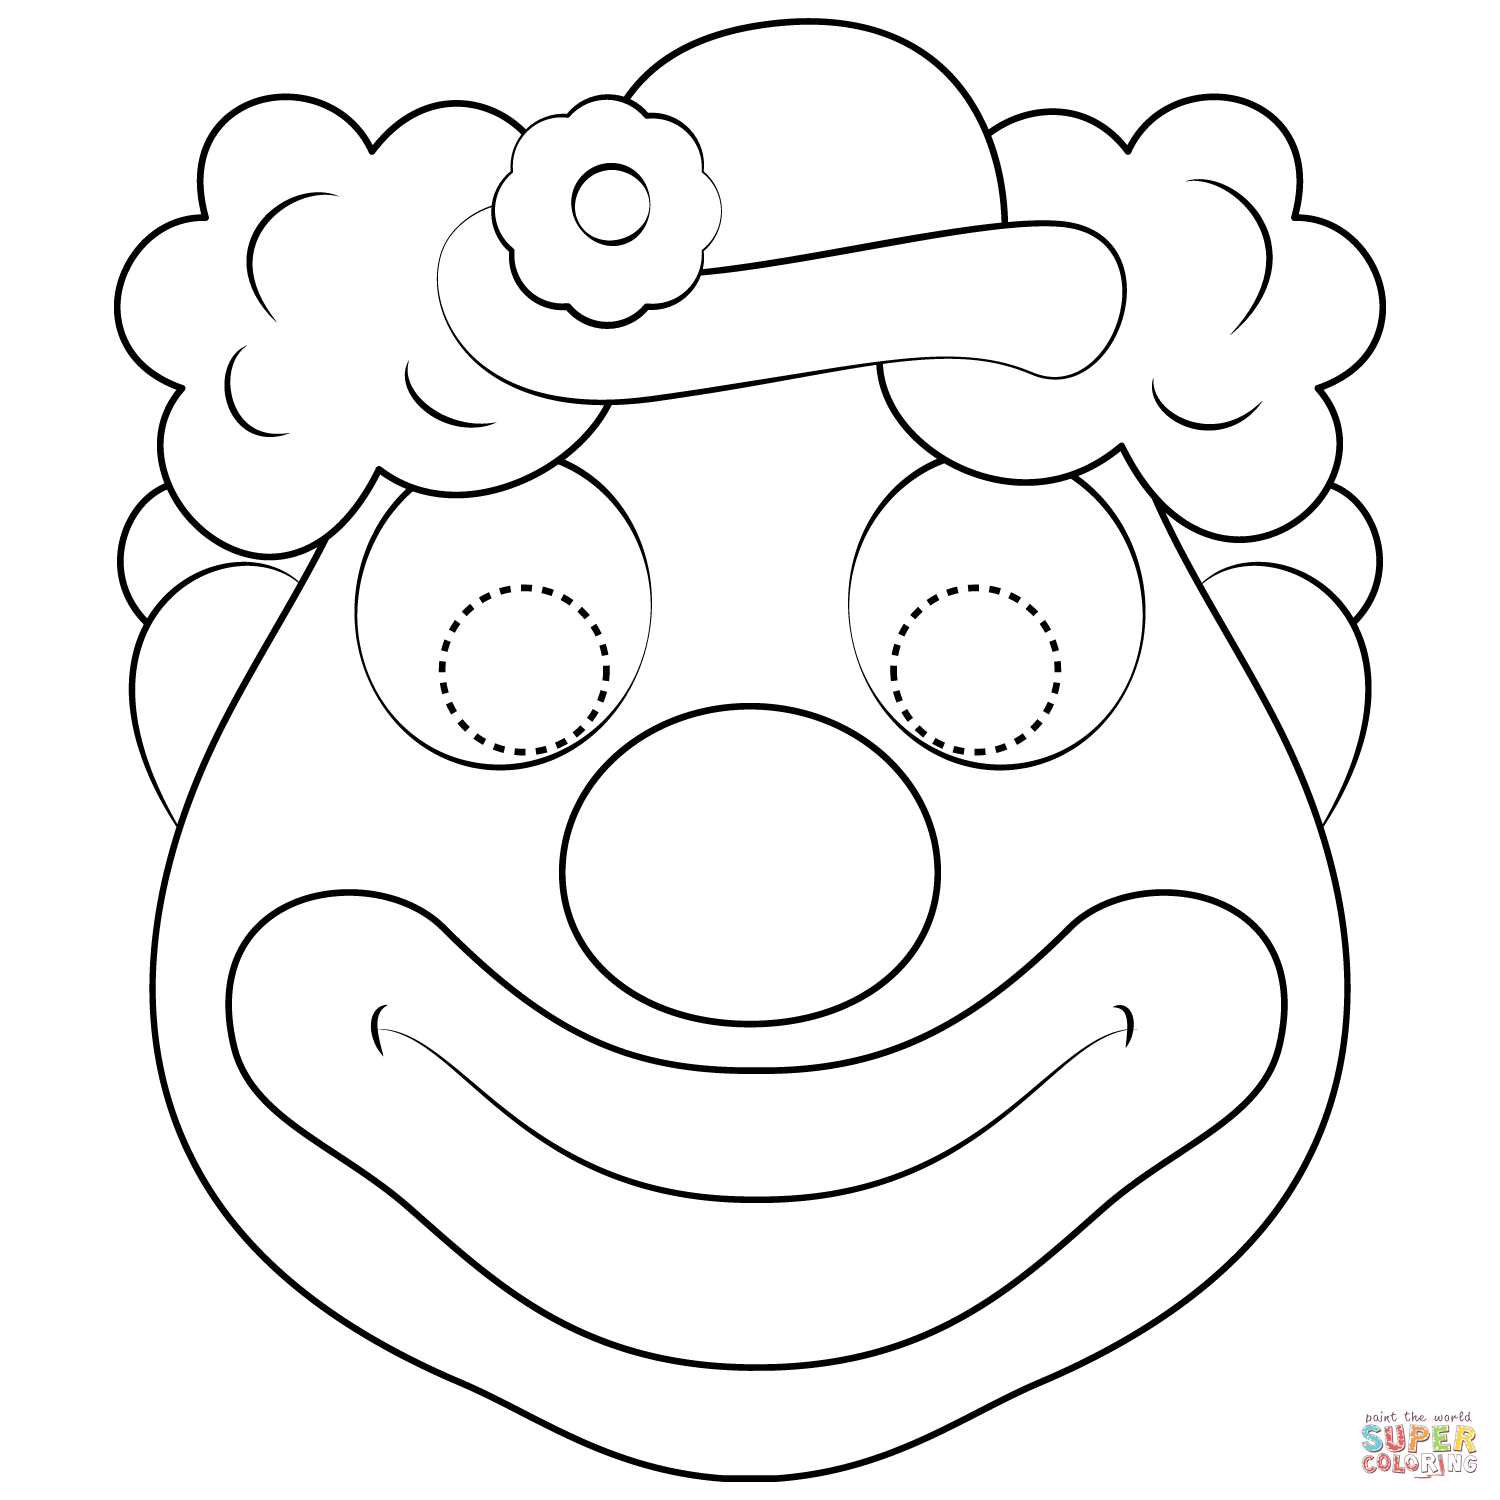 easy clown coloring pages smiling clown coloring page clown easy coloring pages